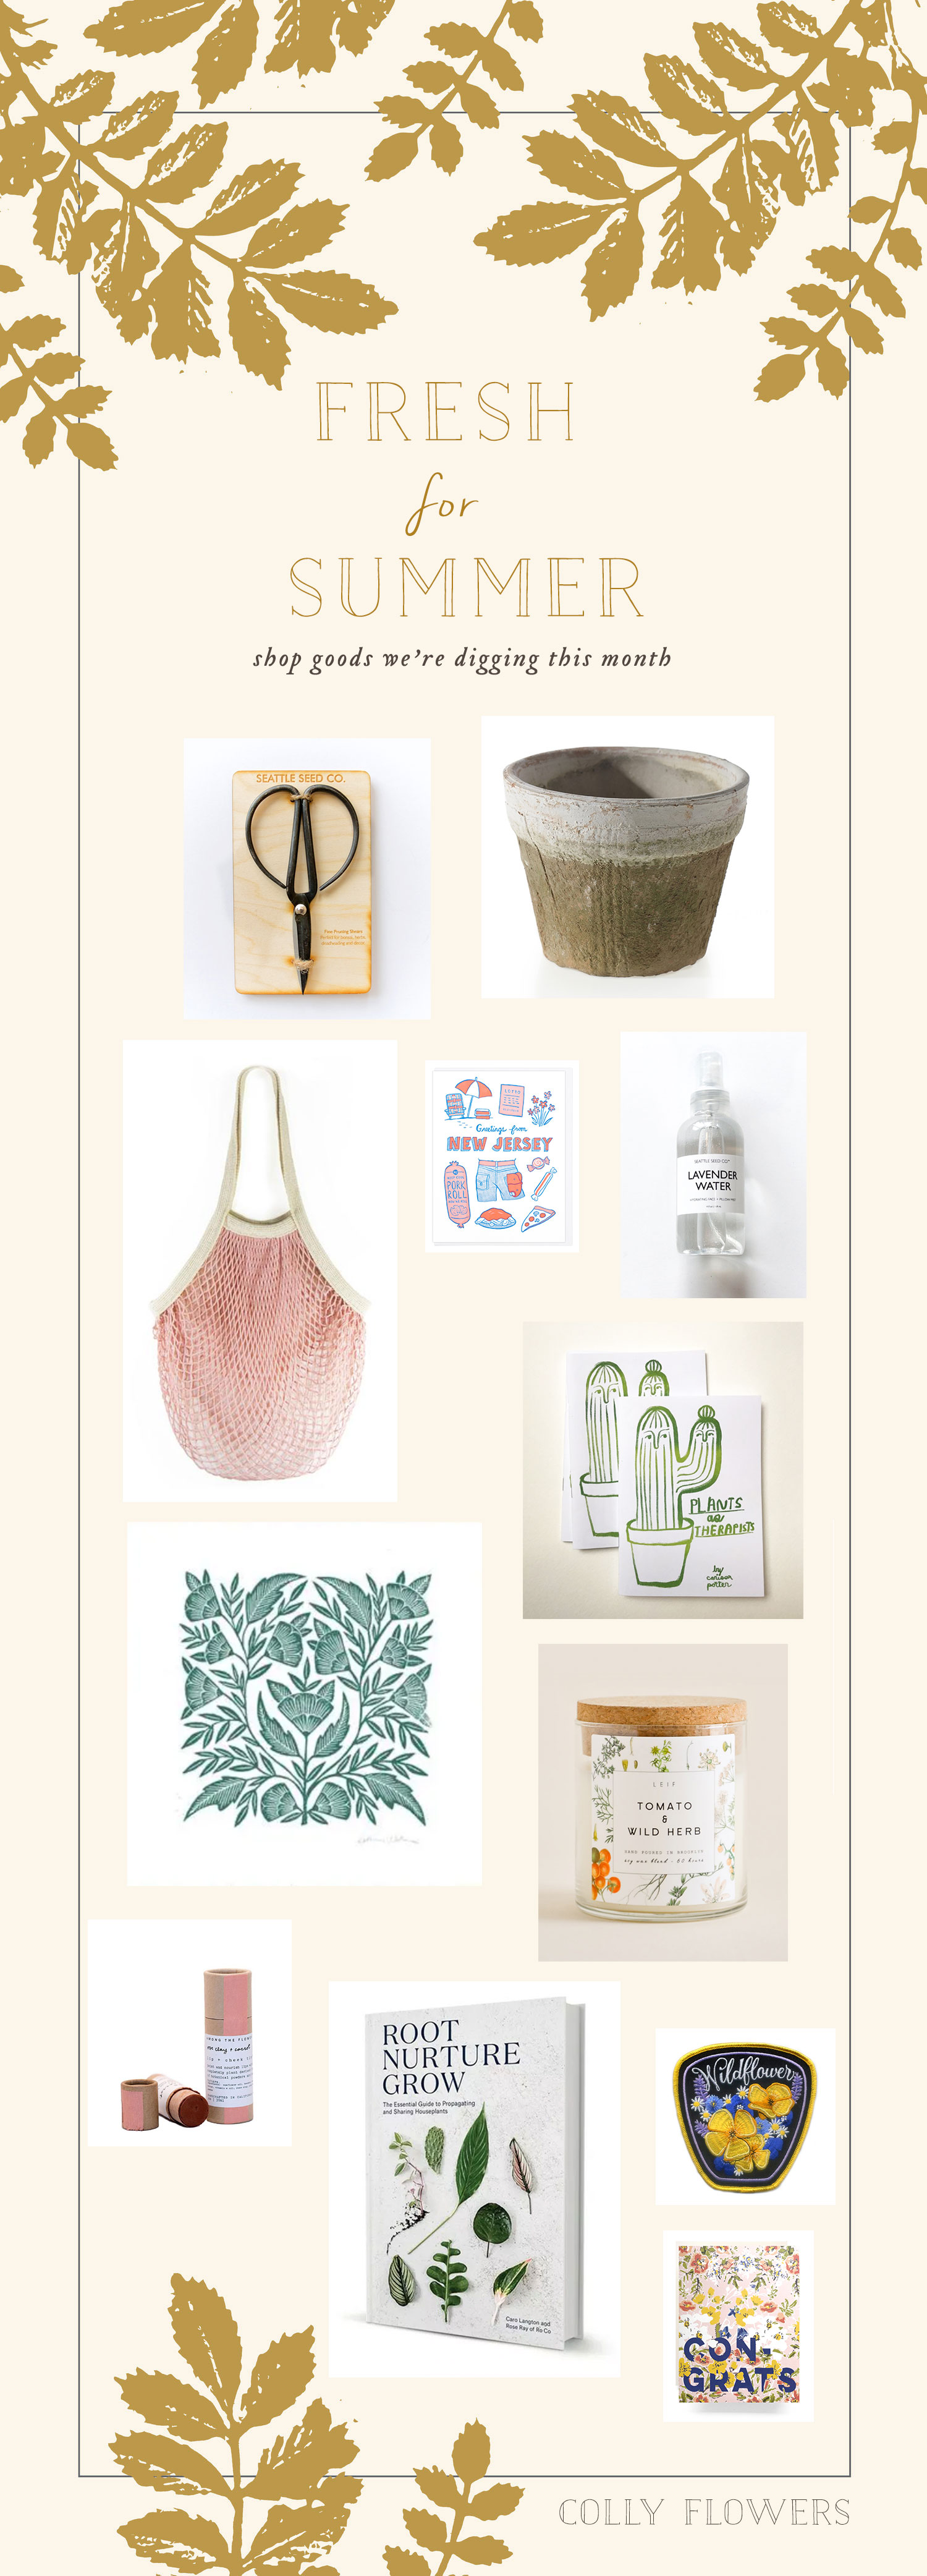 colly+flowers+gift+shop.jpg